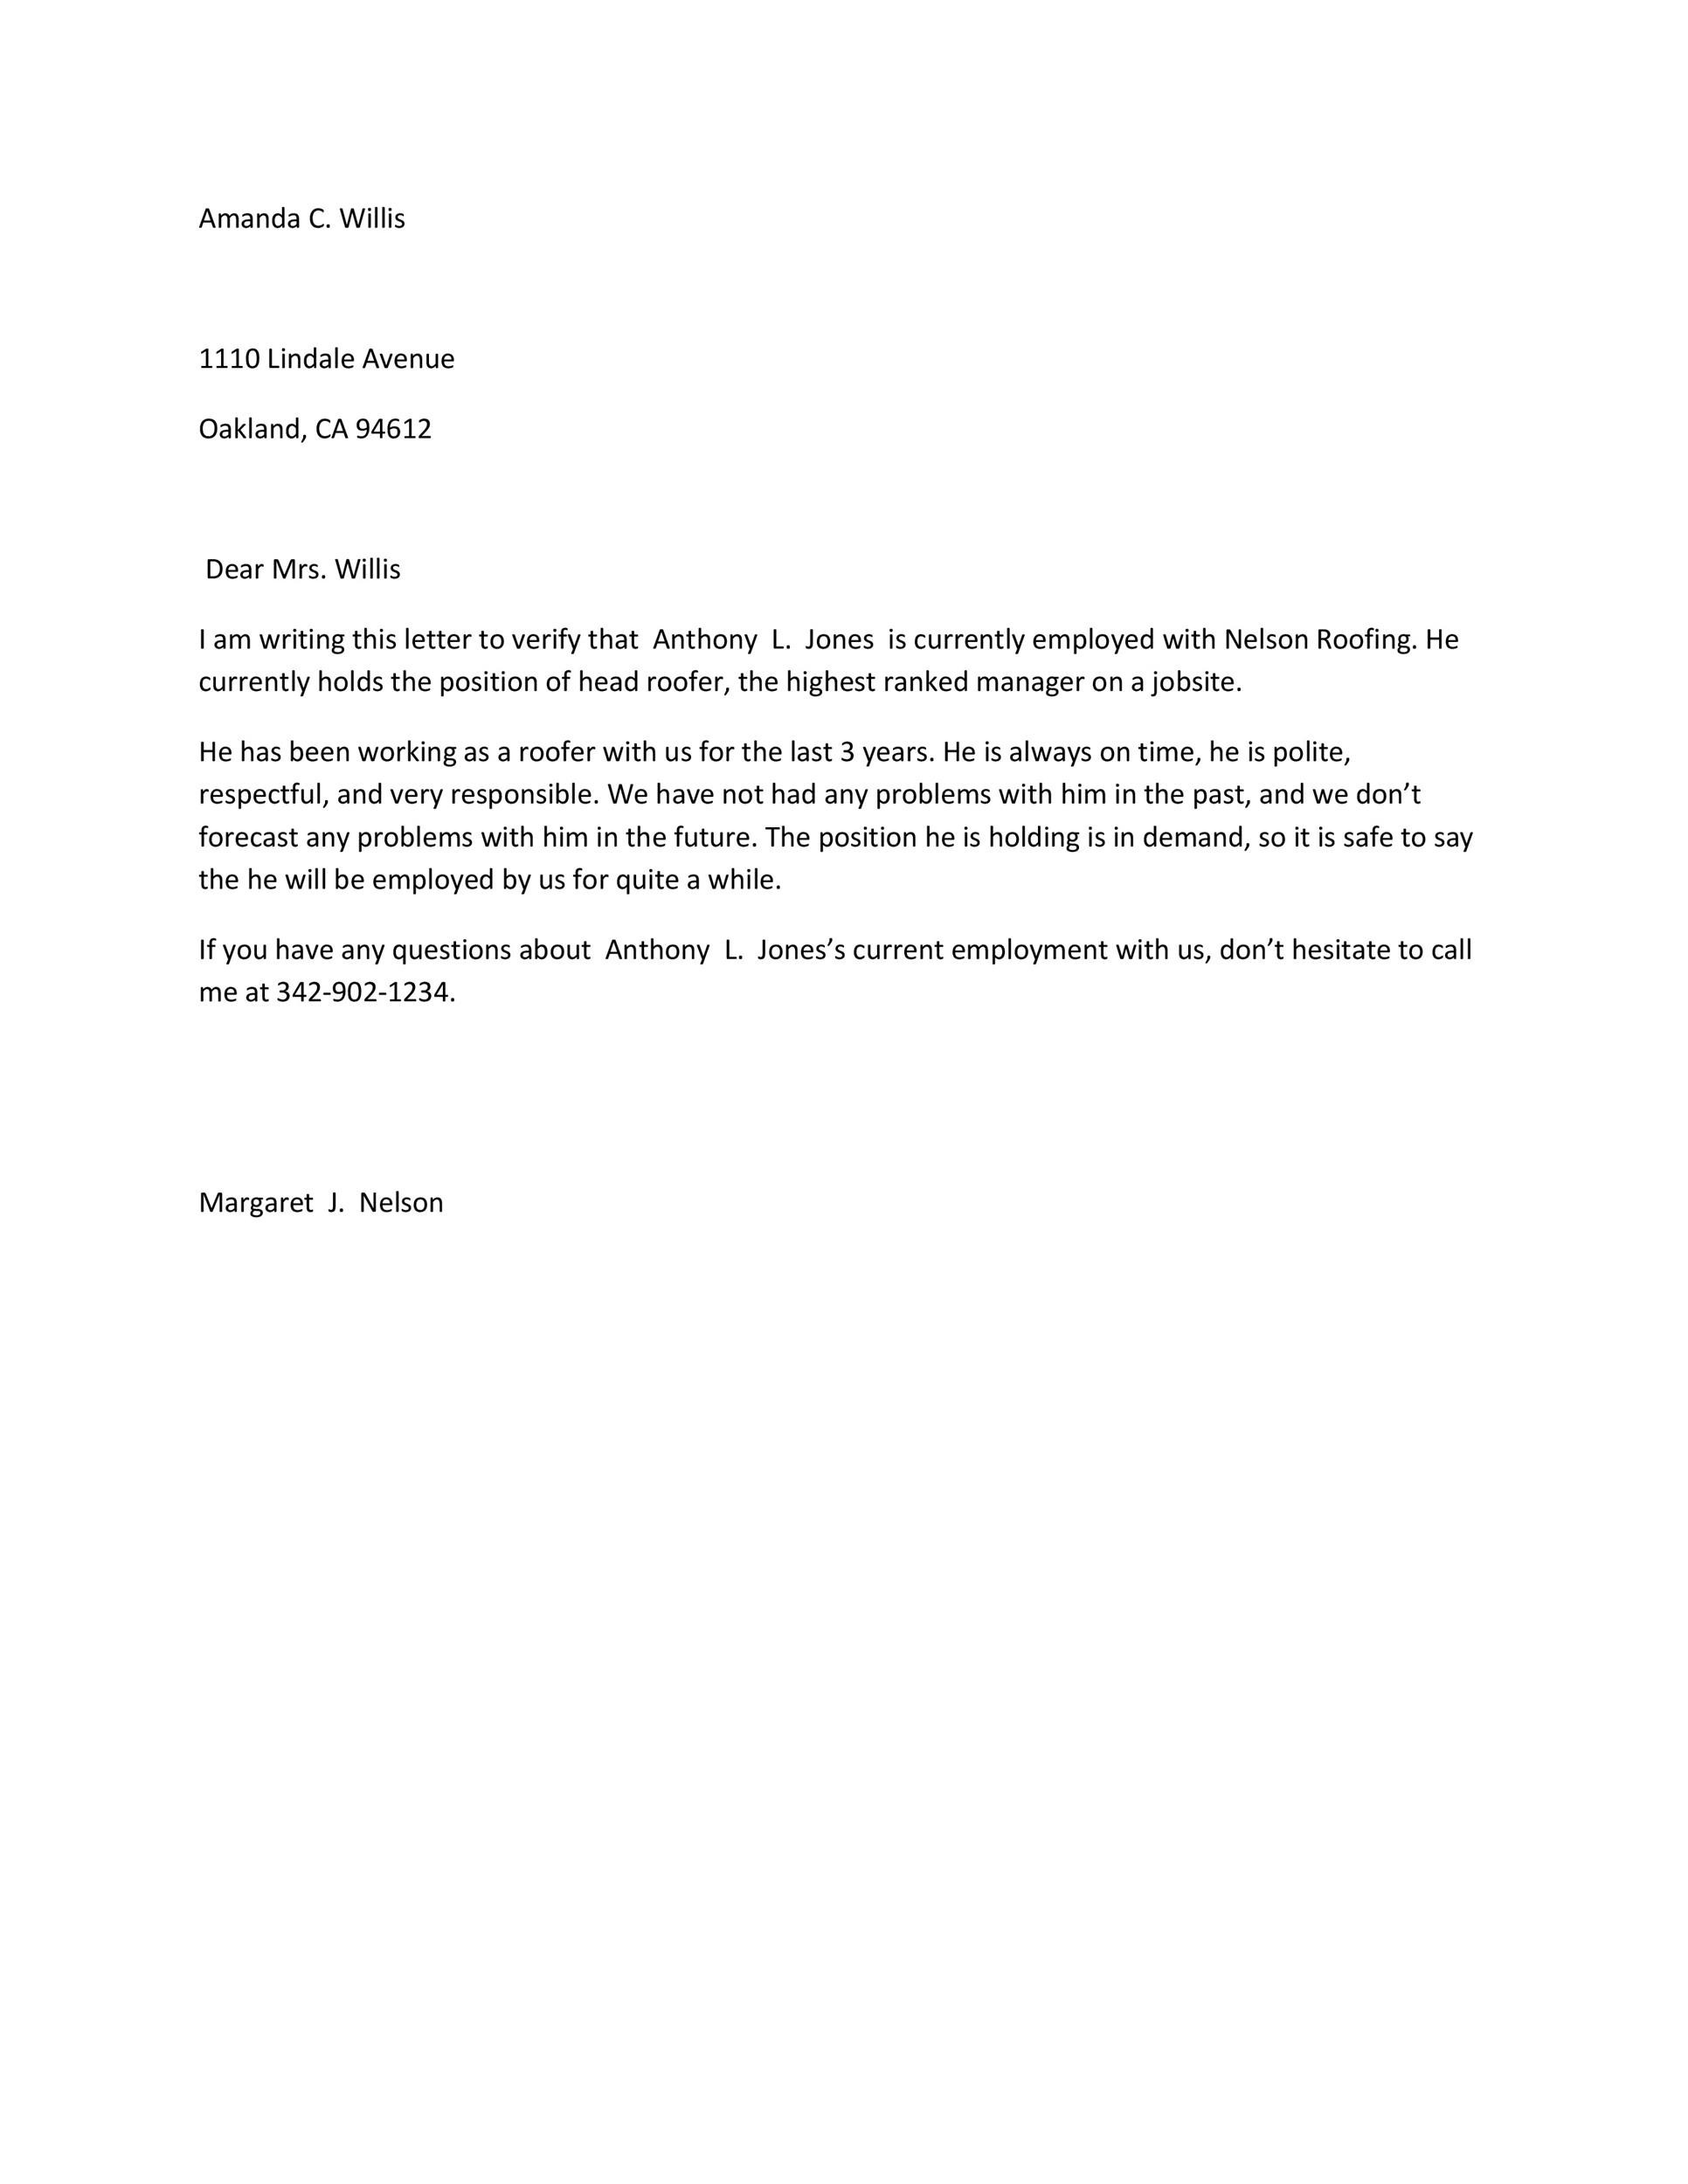 Proof Of Employment Letter Template  AtarprodInfo